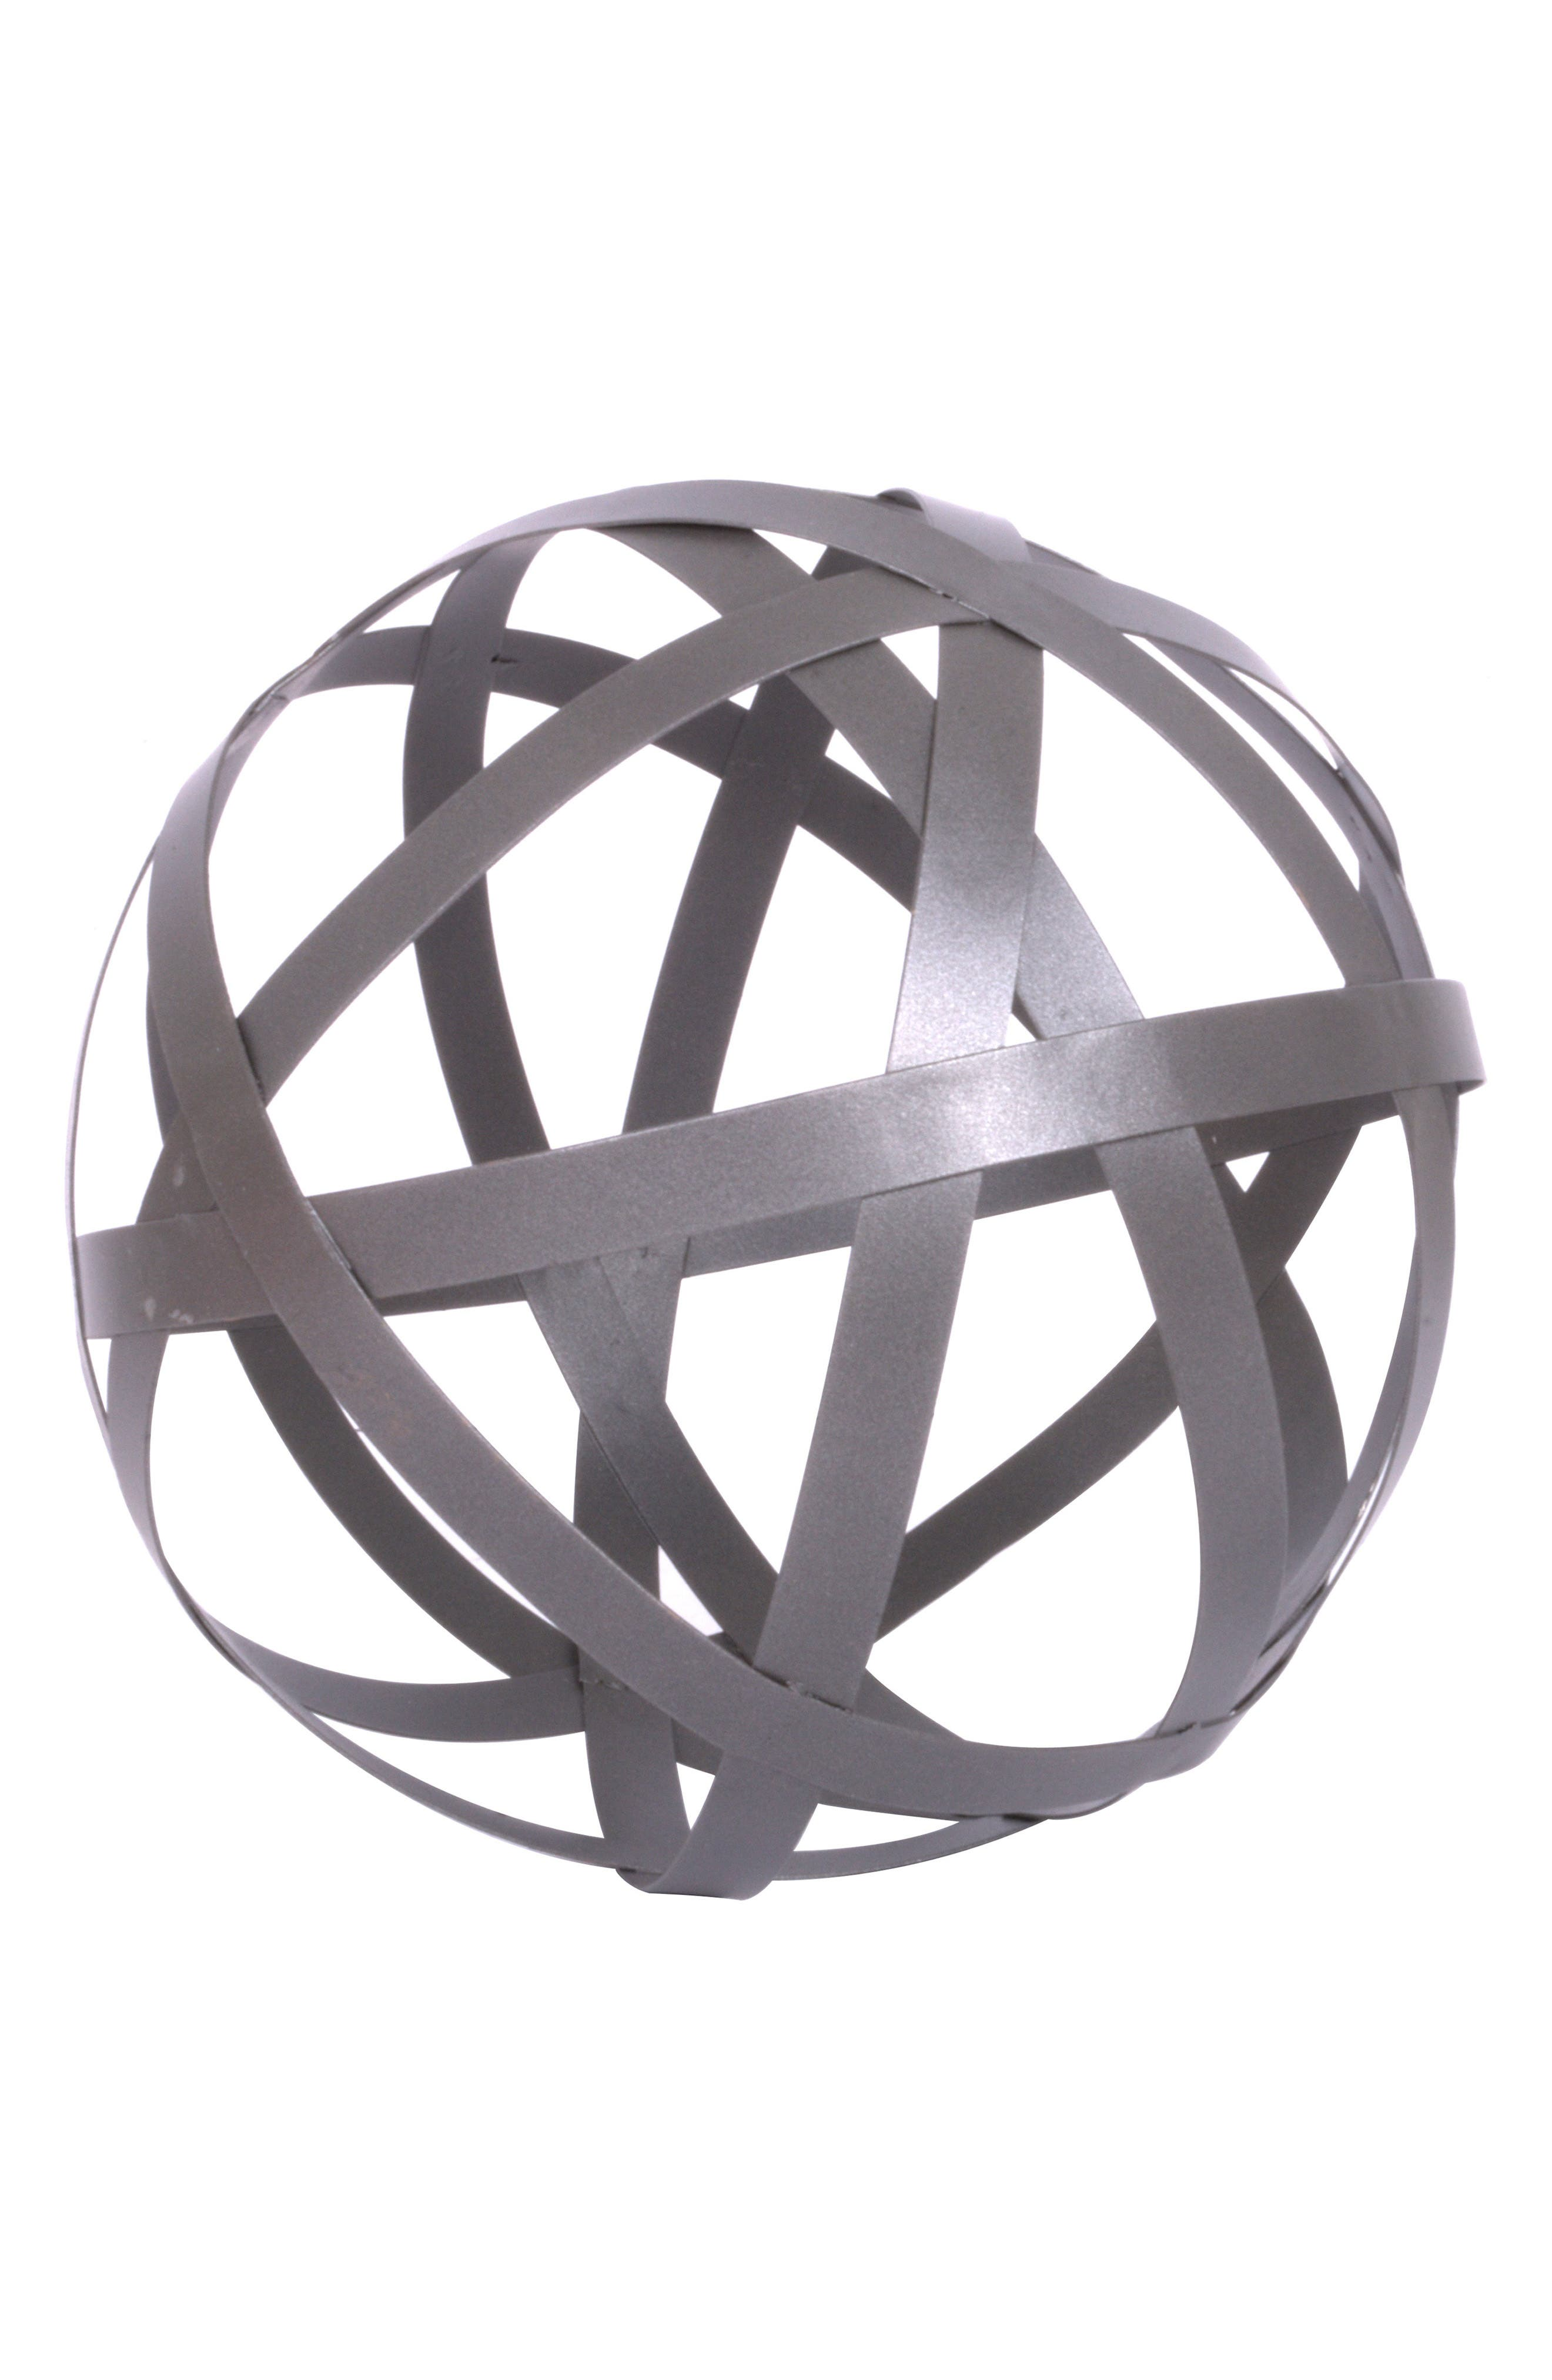 Metal Orb Tabletop Decoration,                             Main thumbnail 1, color,                             020